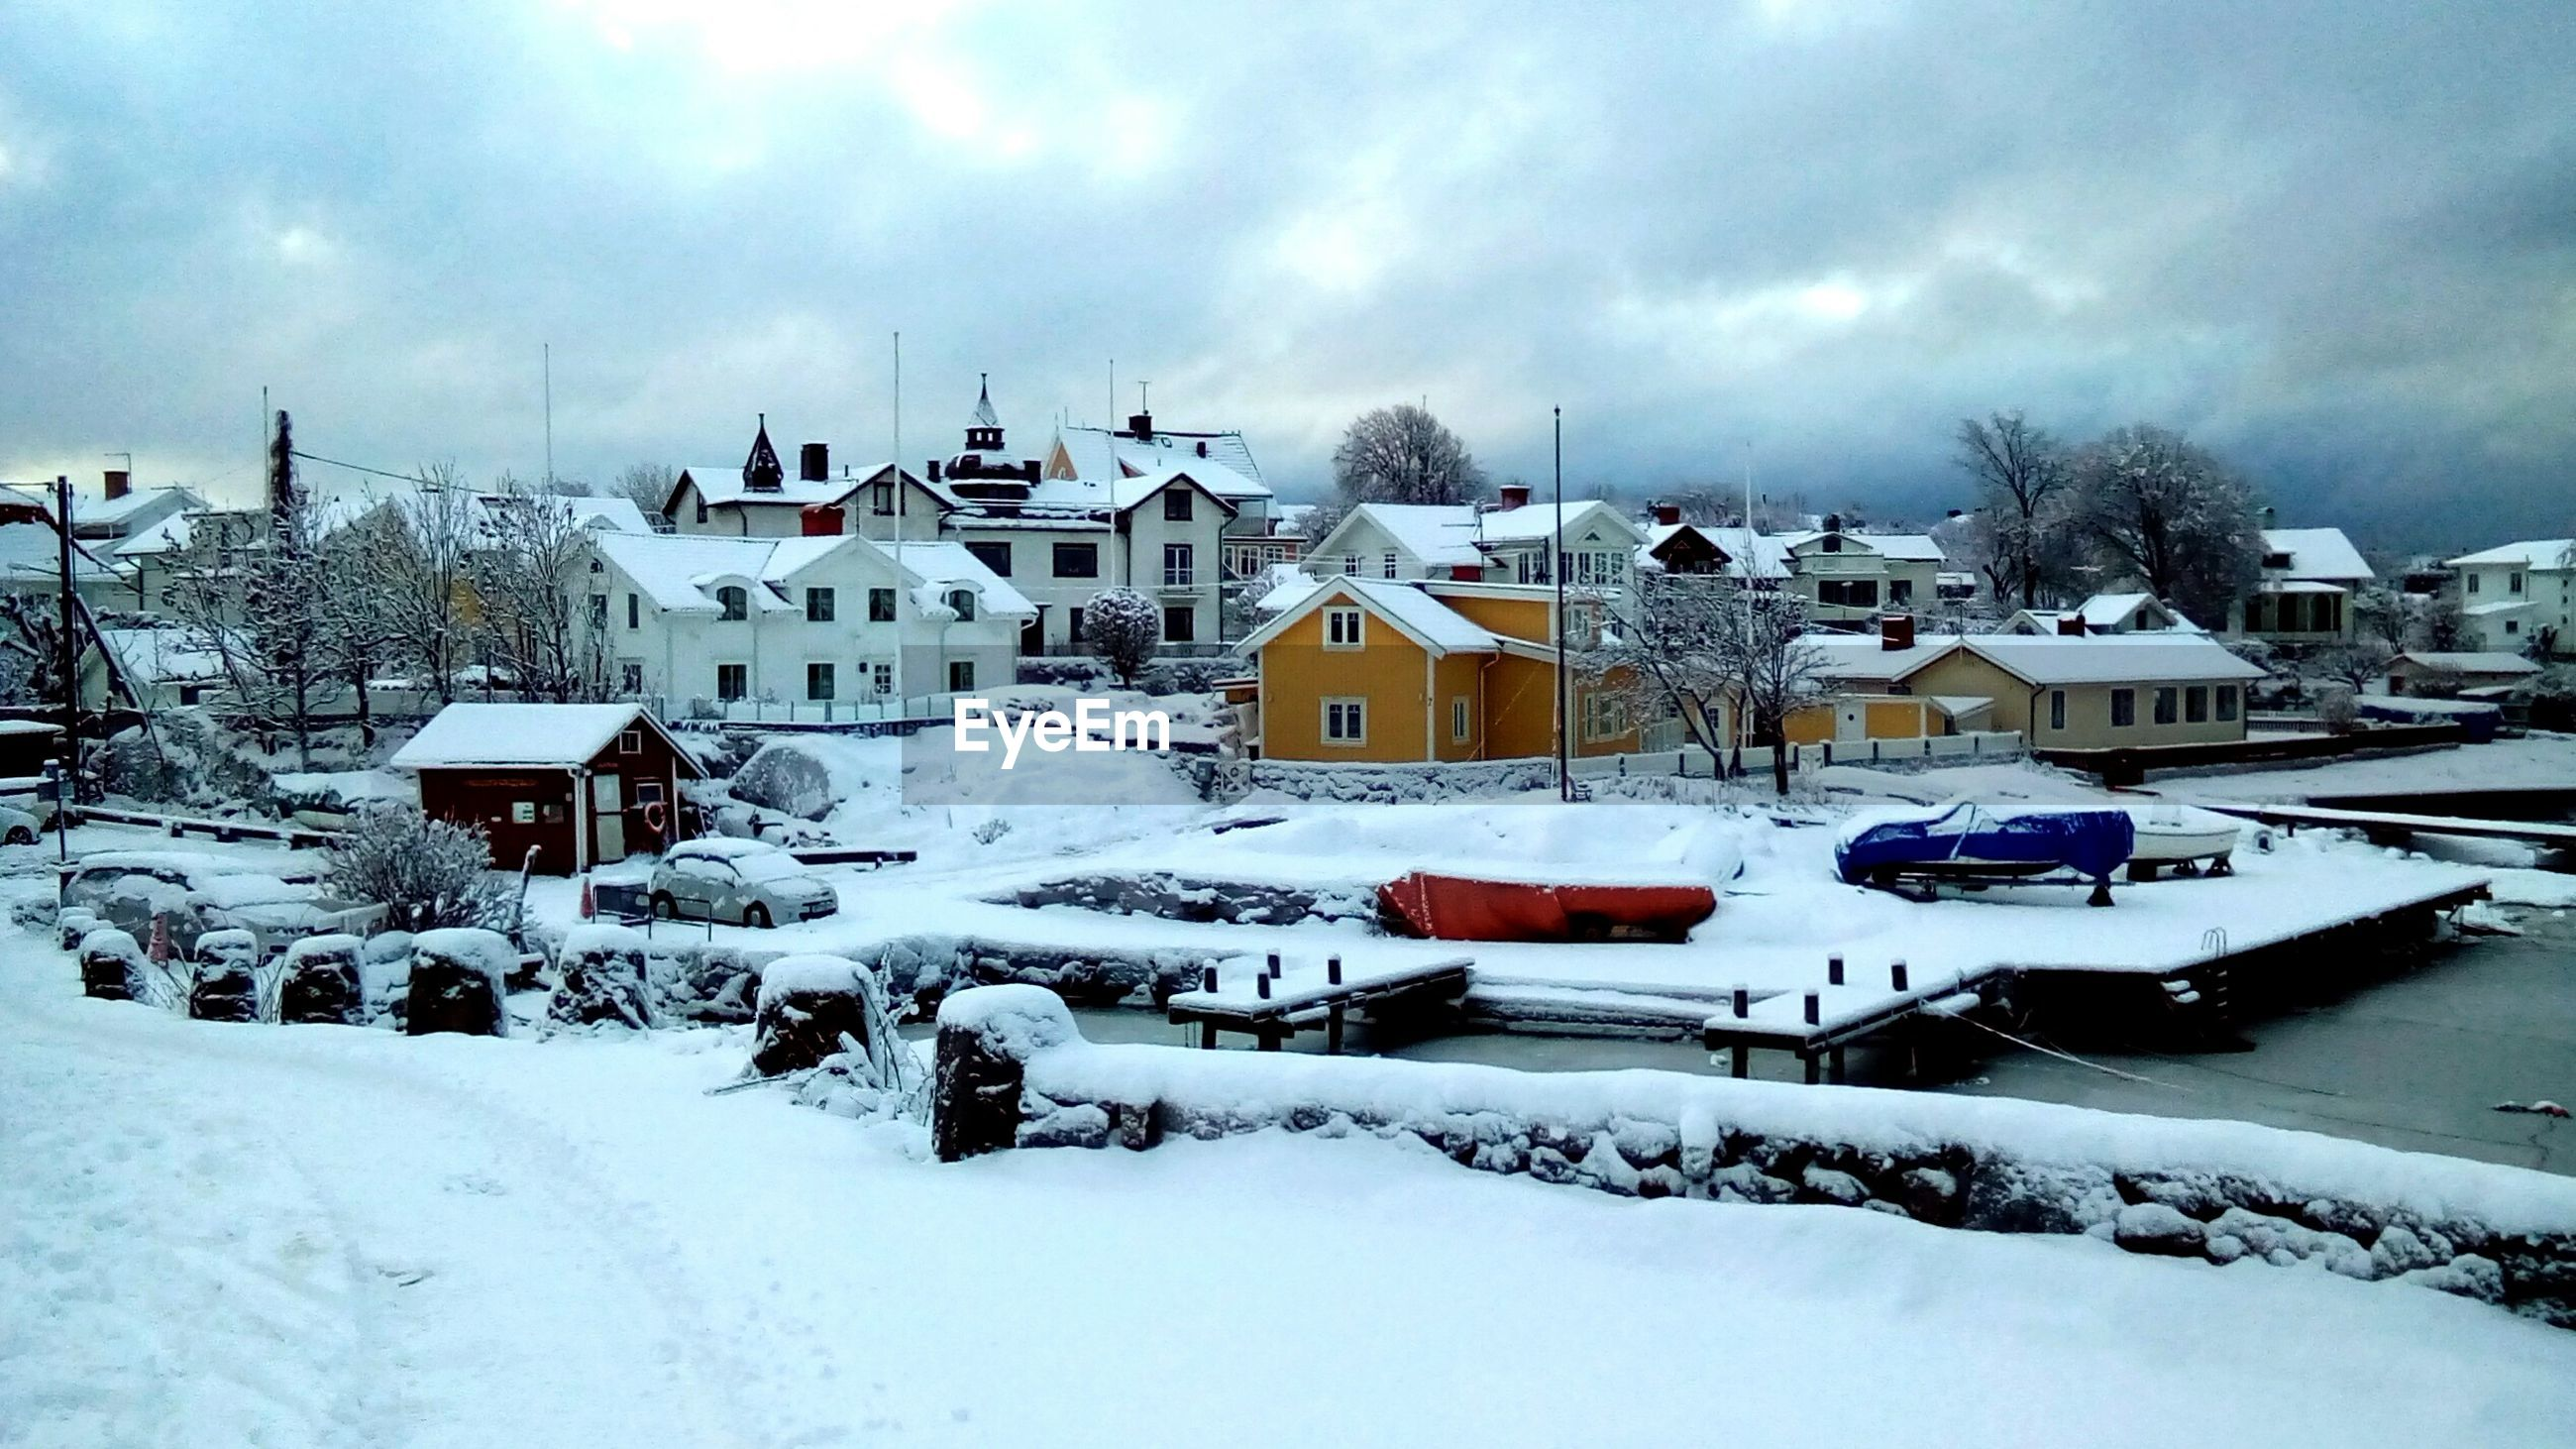 Cars parked on snow covered landscape against cloudy sky